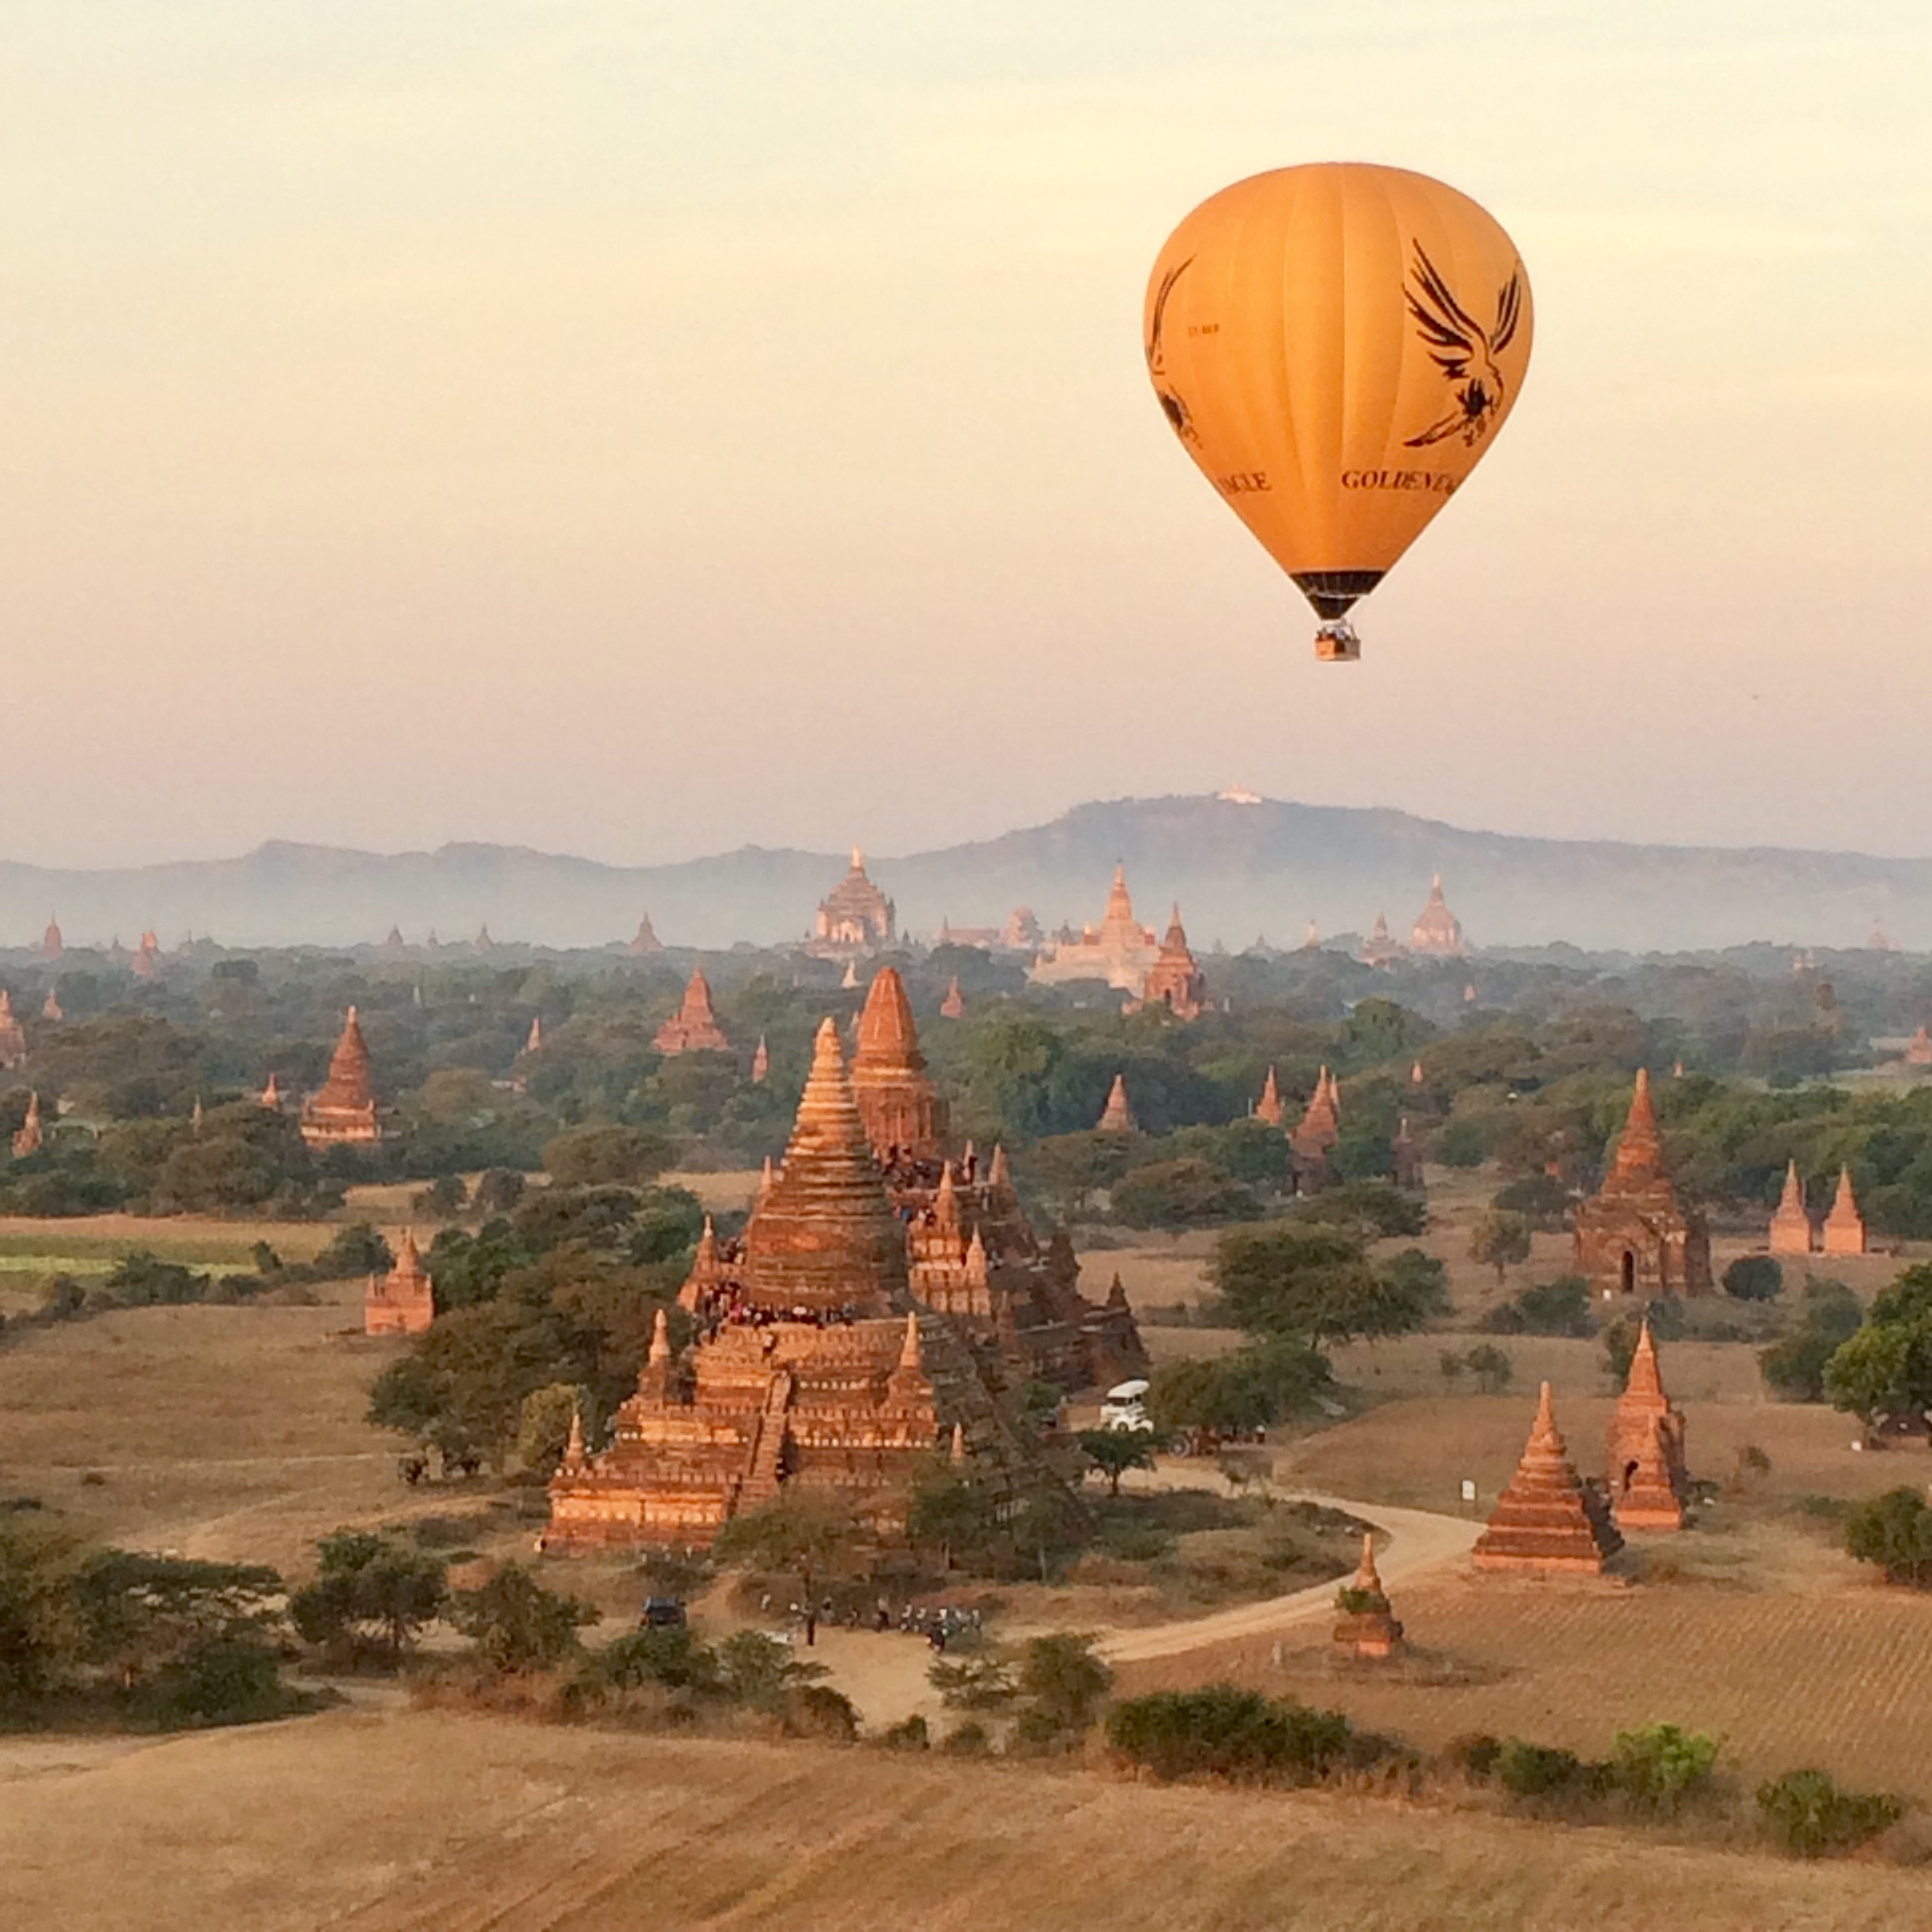 Hot air balloon flying over Bagan. The six month adventure route.